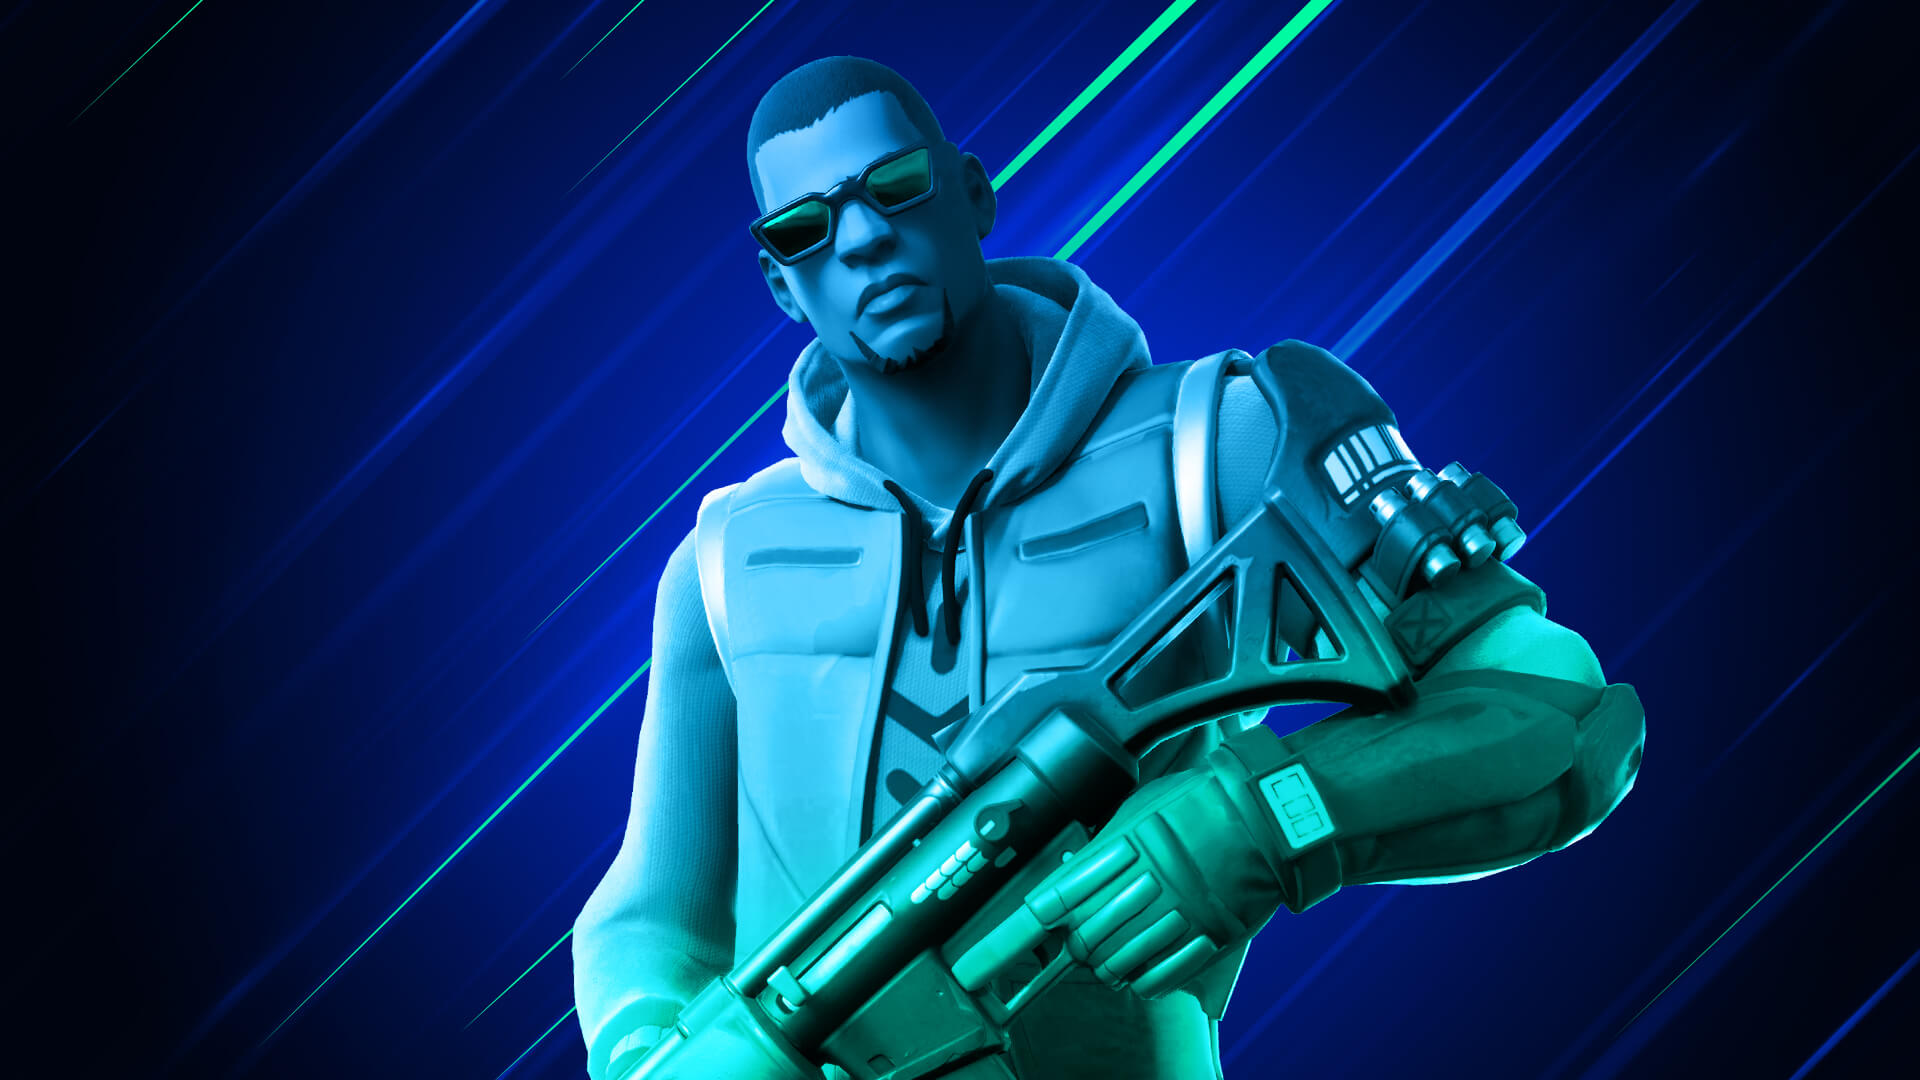 Fortnite Für Windows 10 celebration cup 'only on ps4' official rules